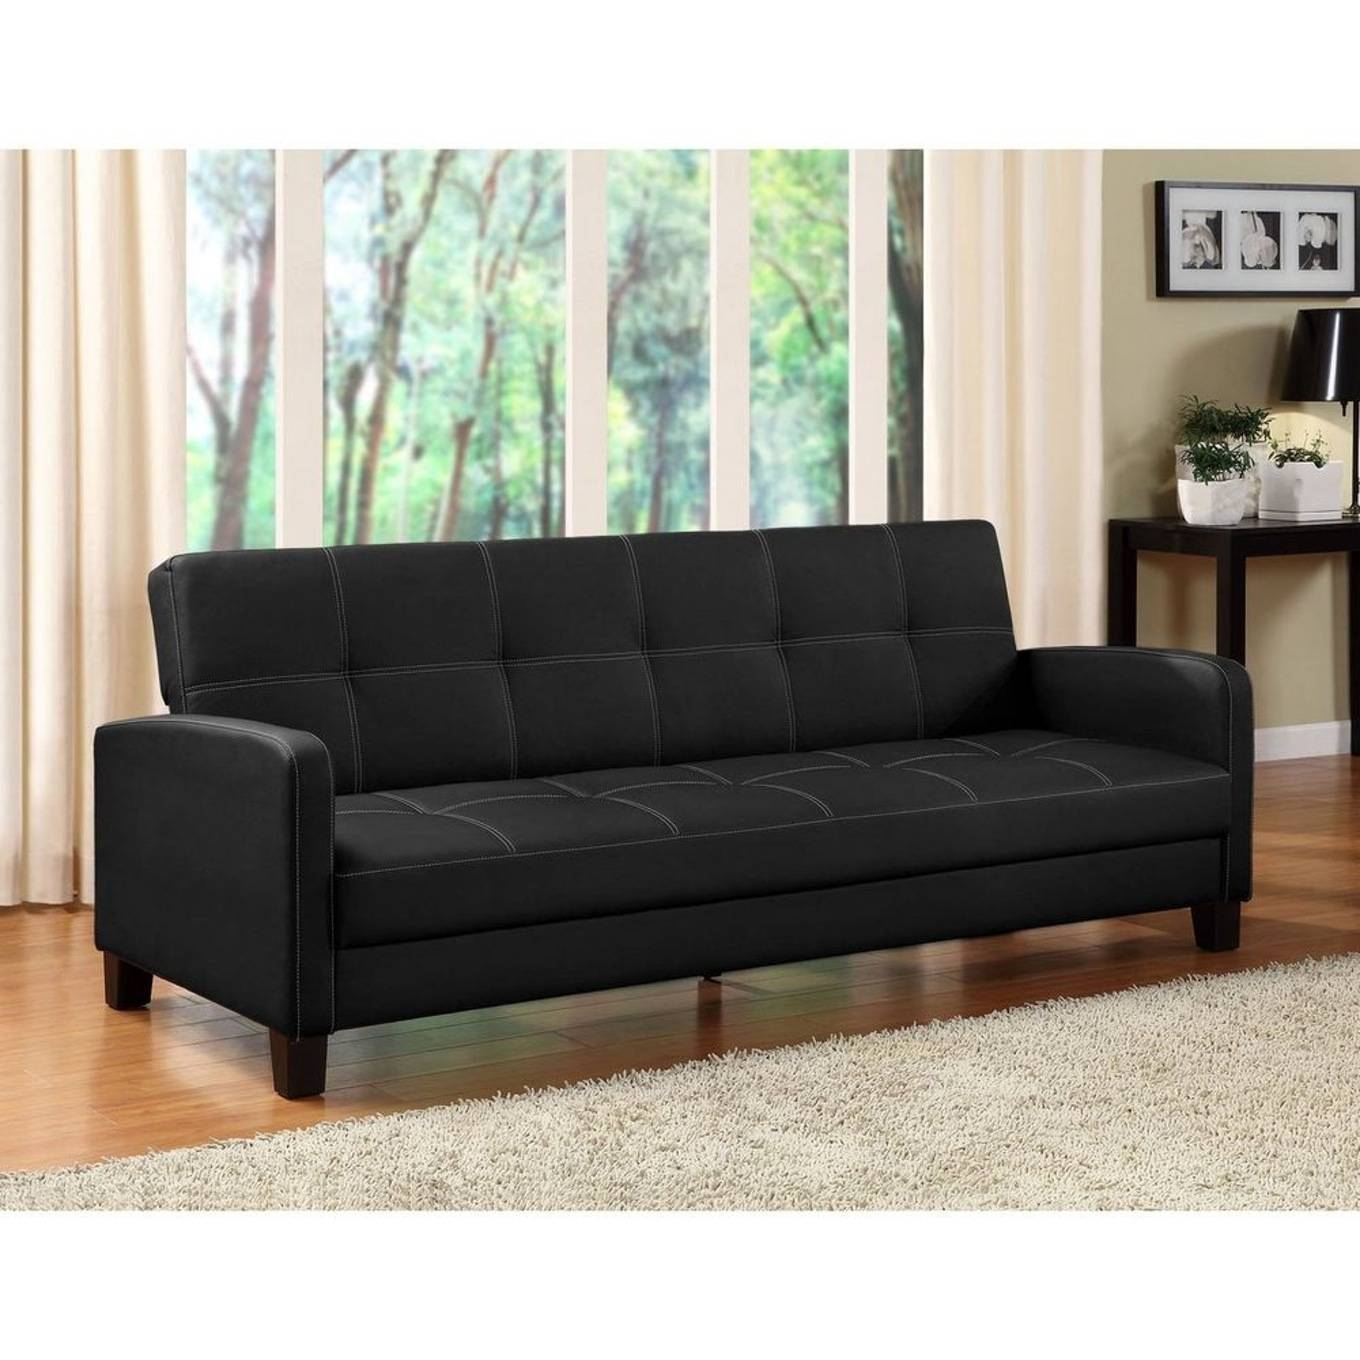 Furniture: Futon Bed Target | Futons At Target | Futon From Target pertaining to Target Couch Beds (Image 6 of 15)